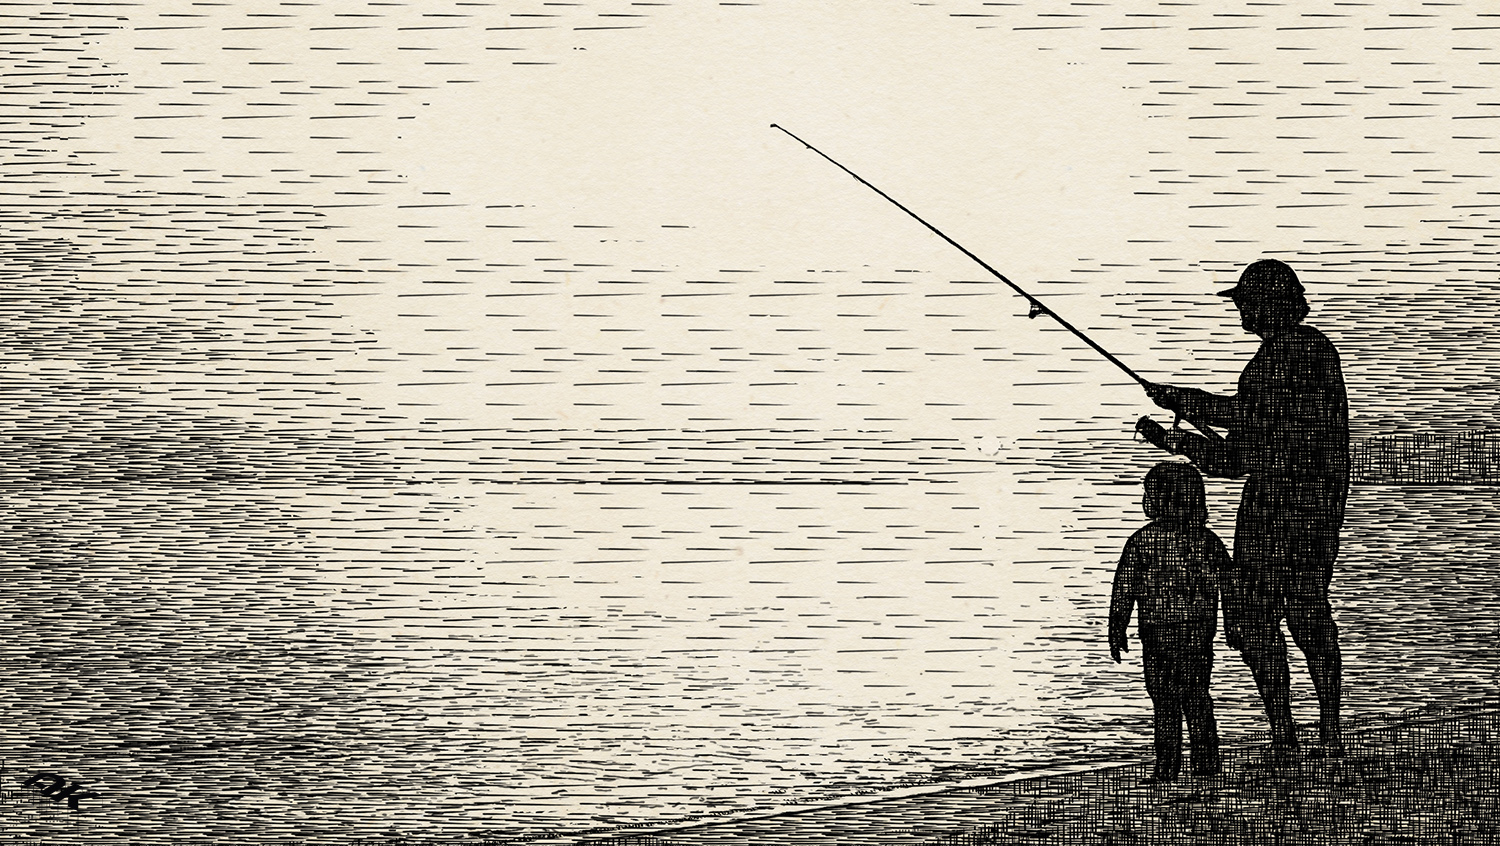 Silhouettes-Engraving-4-copyright-andrew-knutt